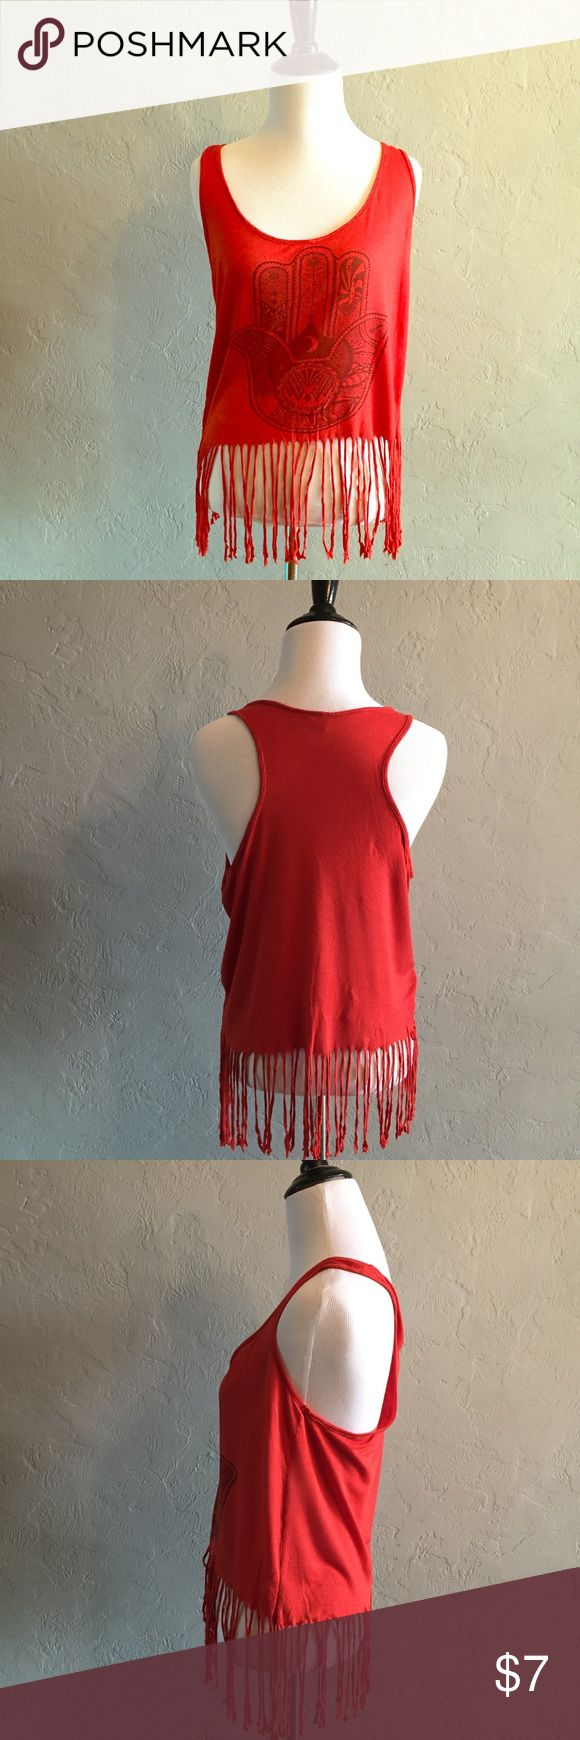 Rue 21 fringe tank top Rue 21 tribal hand fringe tank top. Cute, fun fringe tank. Perfect for lake days and BBQ's. no size tag but looks like a small. Rue 21 Tops Tank Tops